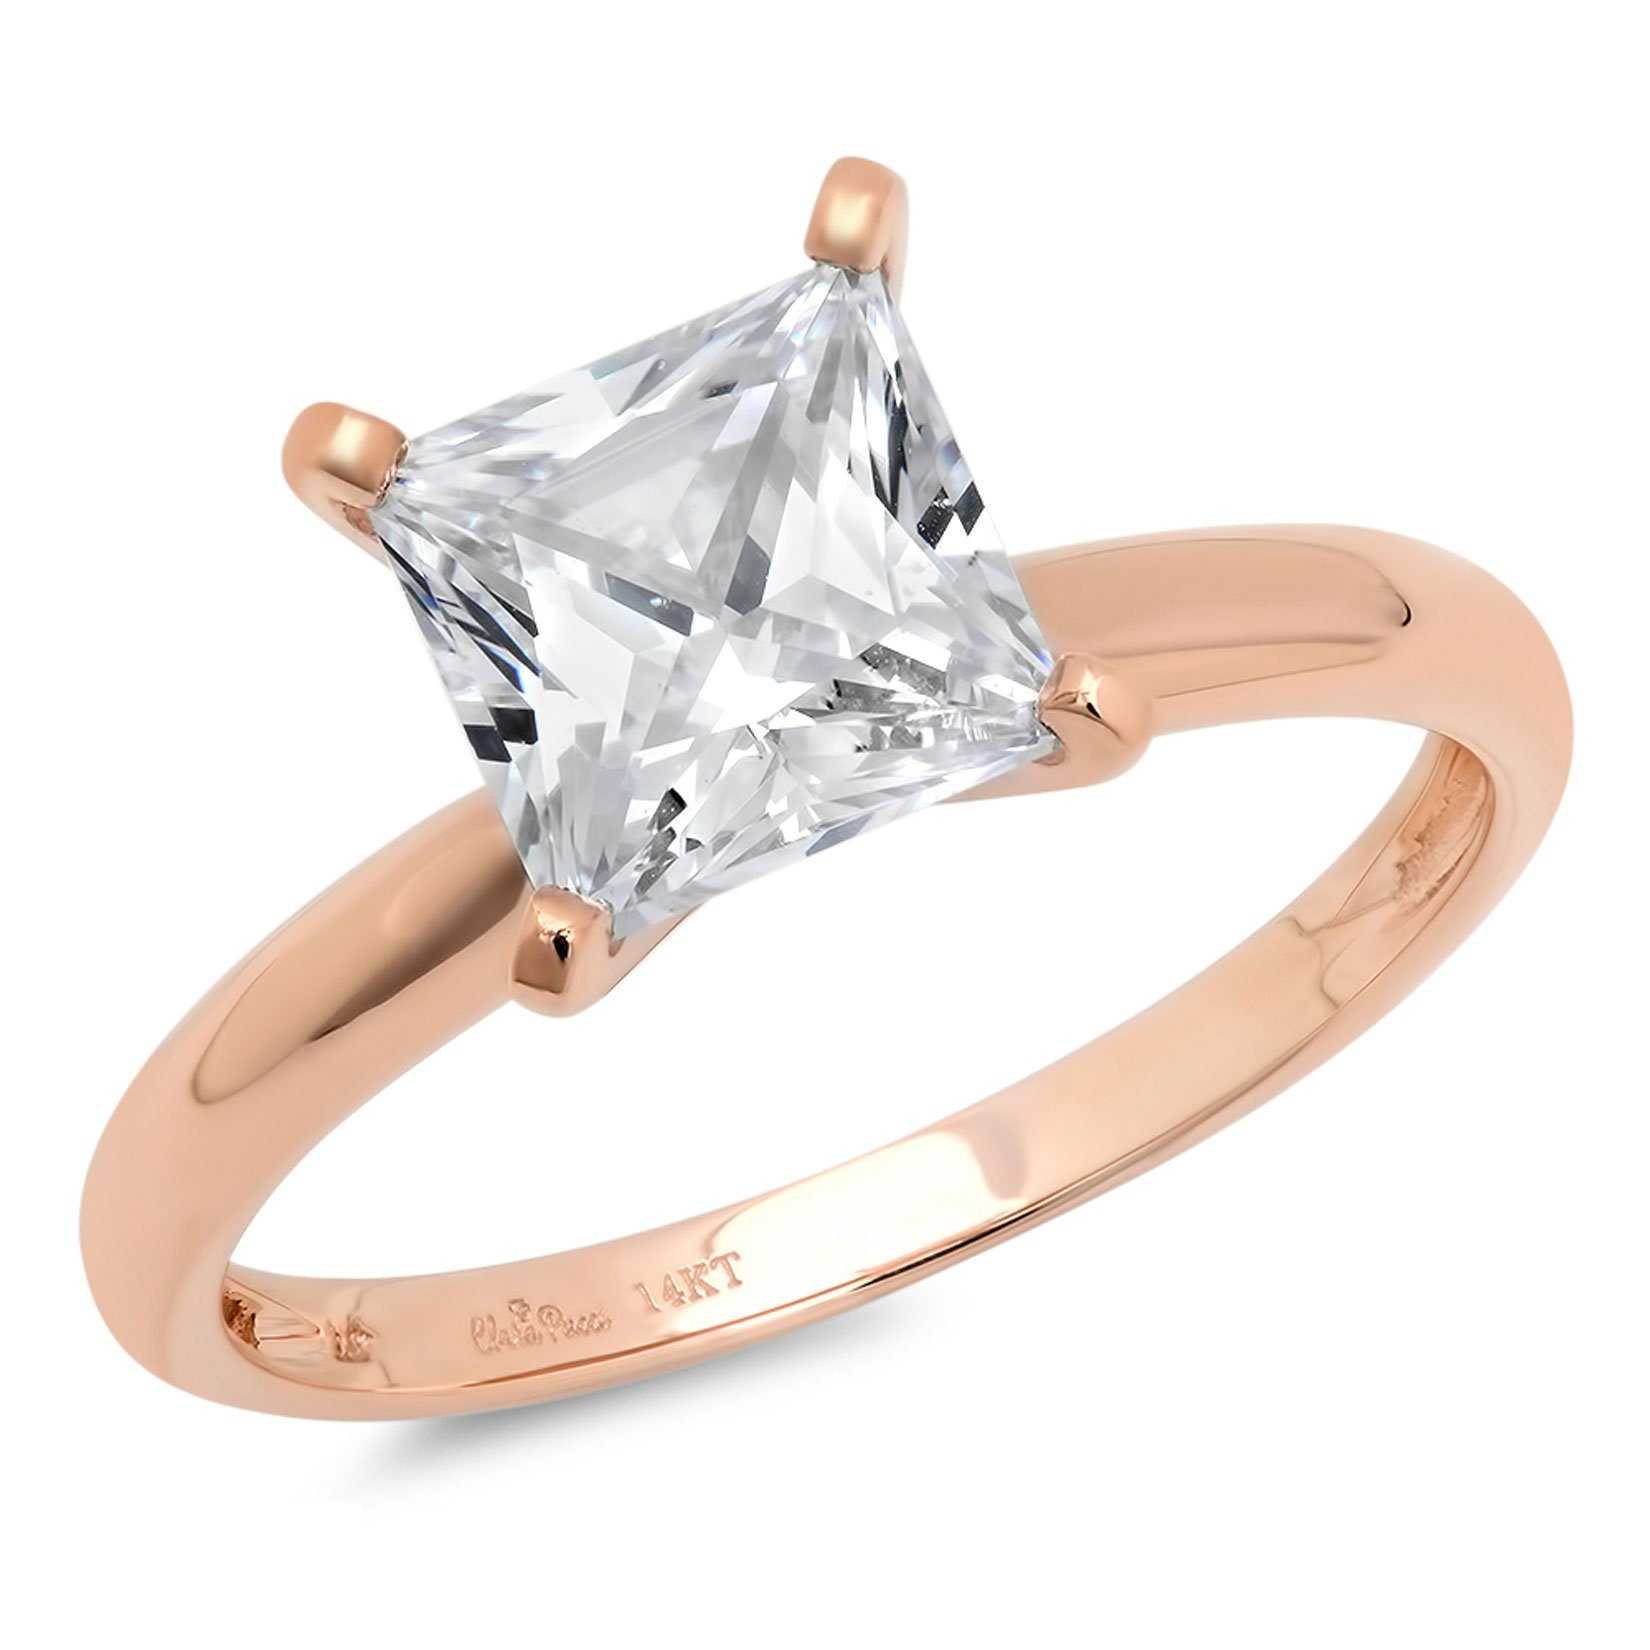 1.2ct Princess Brilliant Cut Classic Wedding Statement Anniversary Designer Bridal Solitaire Engagement Promise Ring Solid 14k Rose Gold, Clara Pucci, 6.75 by Clara Pucci